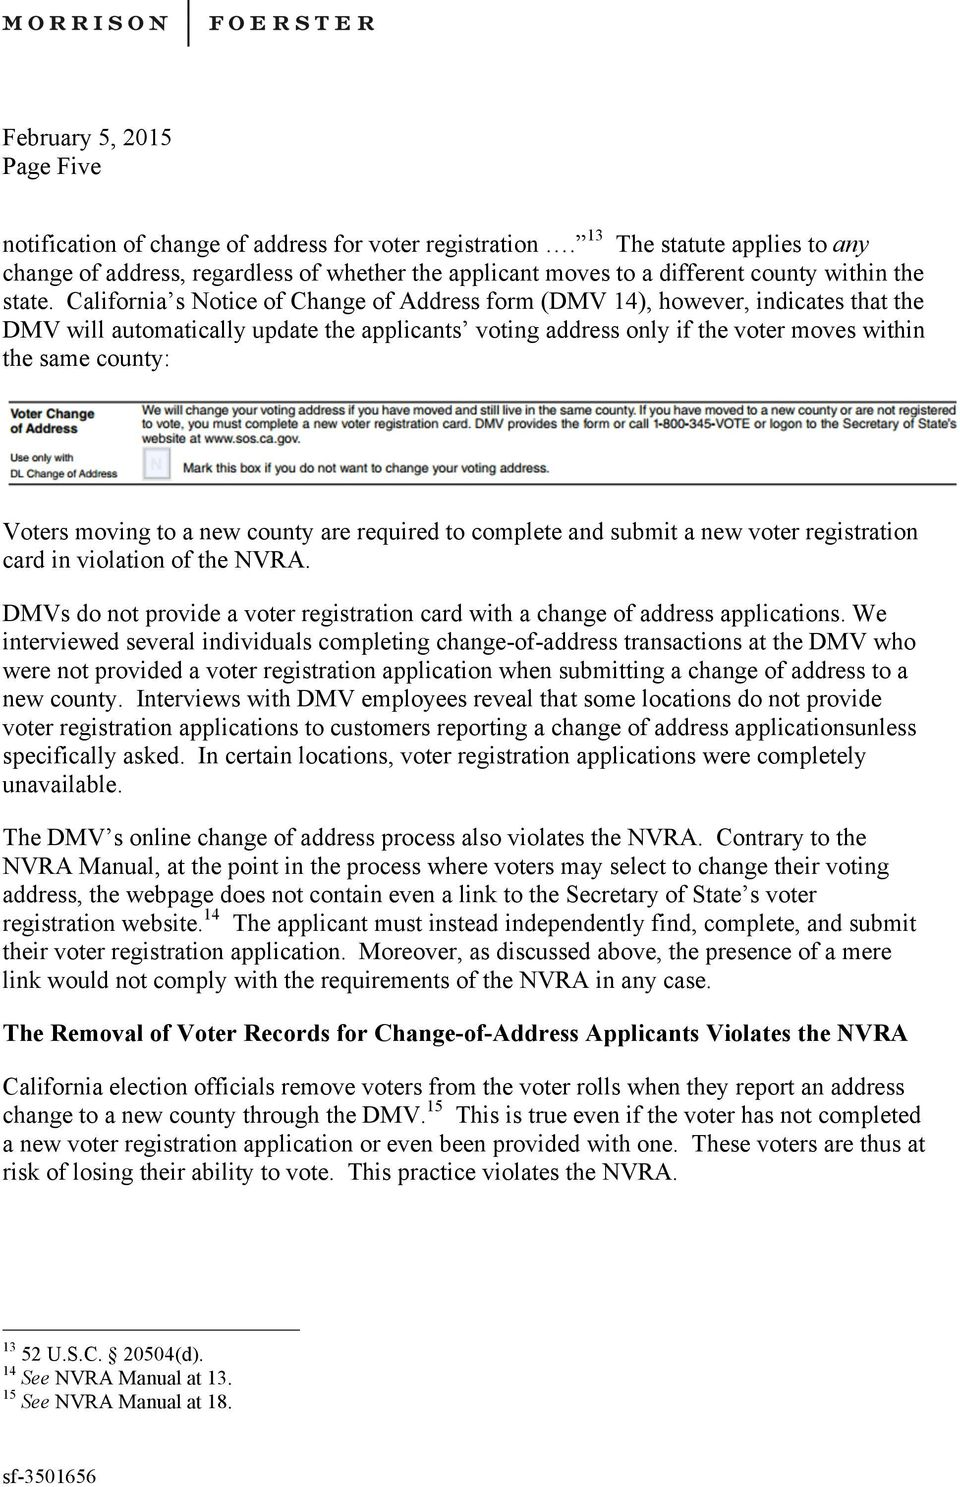 moving to a new county are required to complete and submit a new voter registration card in violation of the NVRA. DMVs do not provide a voter registration card with a change of address applications.